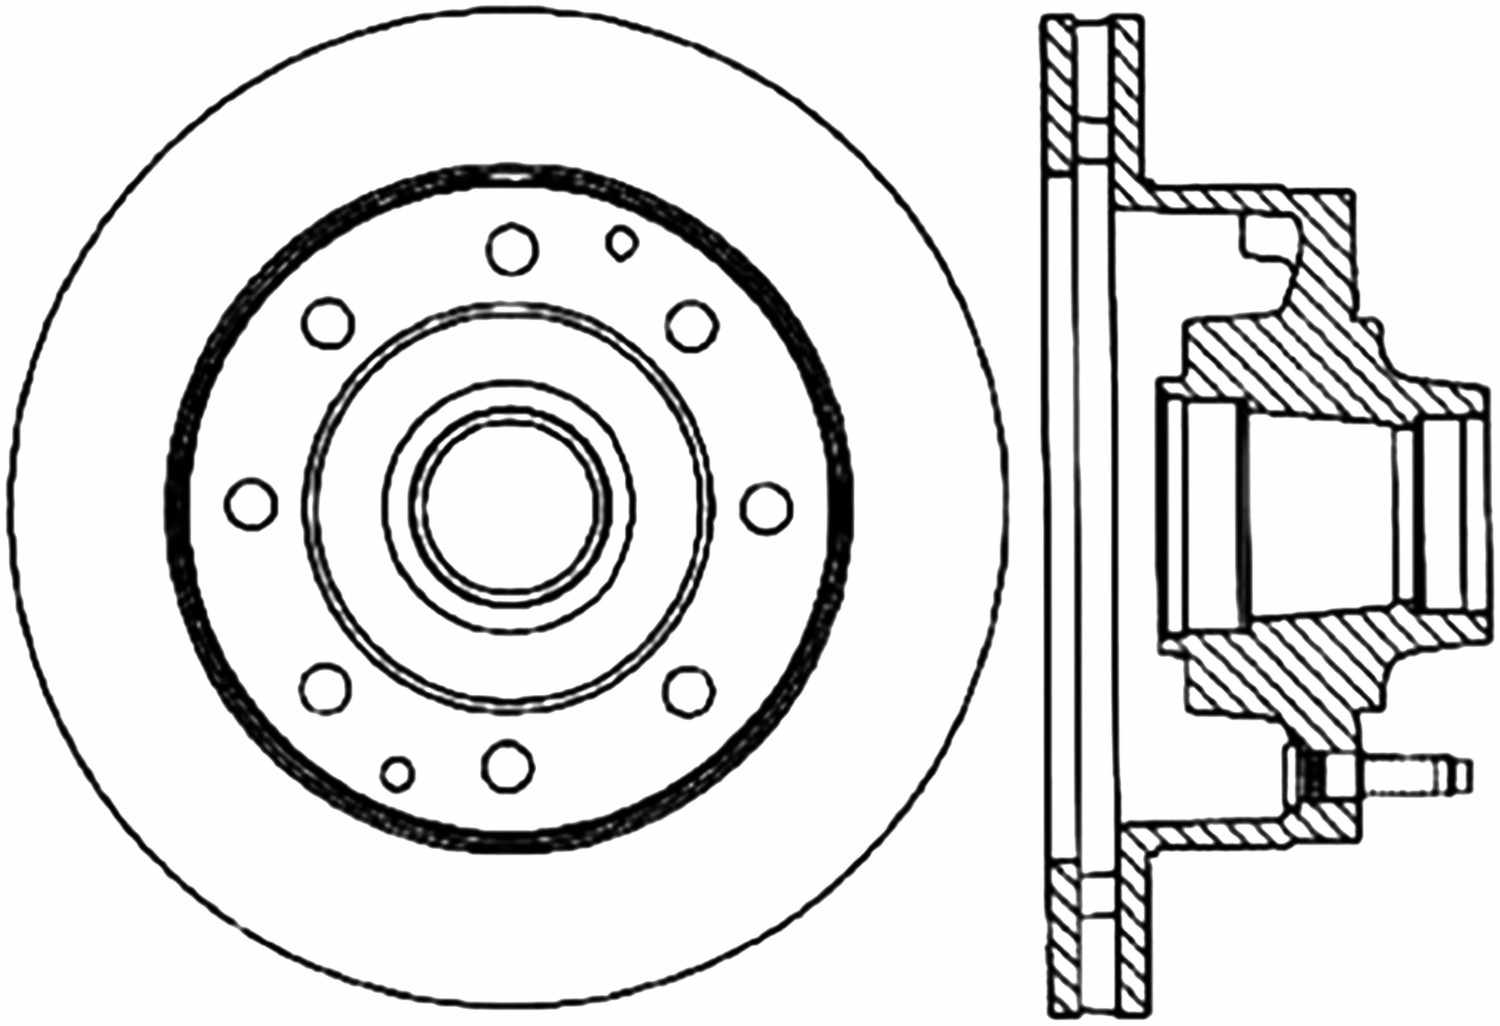 C Tek Standard Disc Brake Rotor Preferred Fits Ford E 250 Econoline E